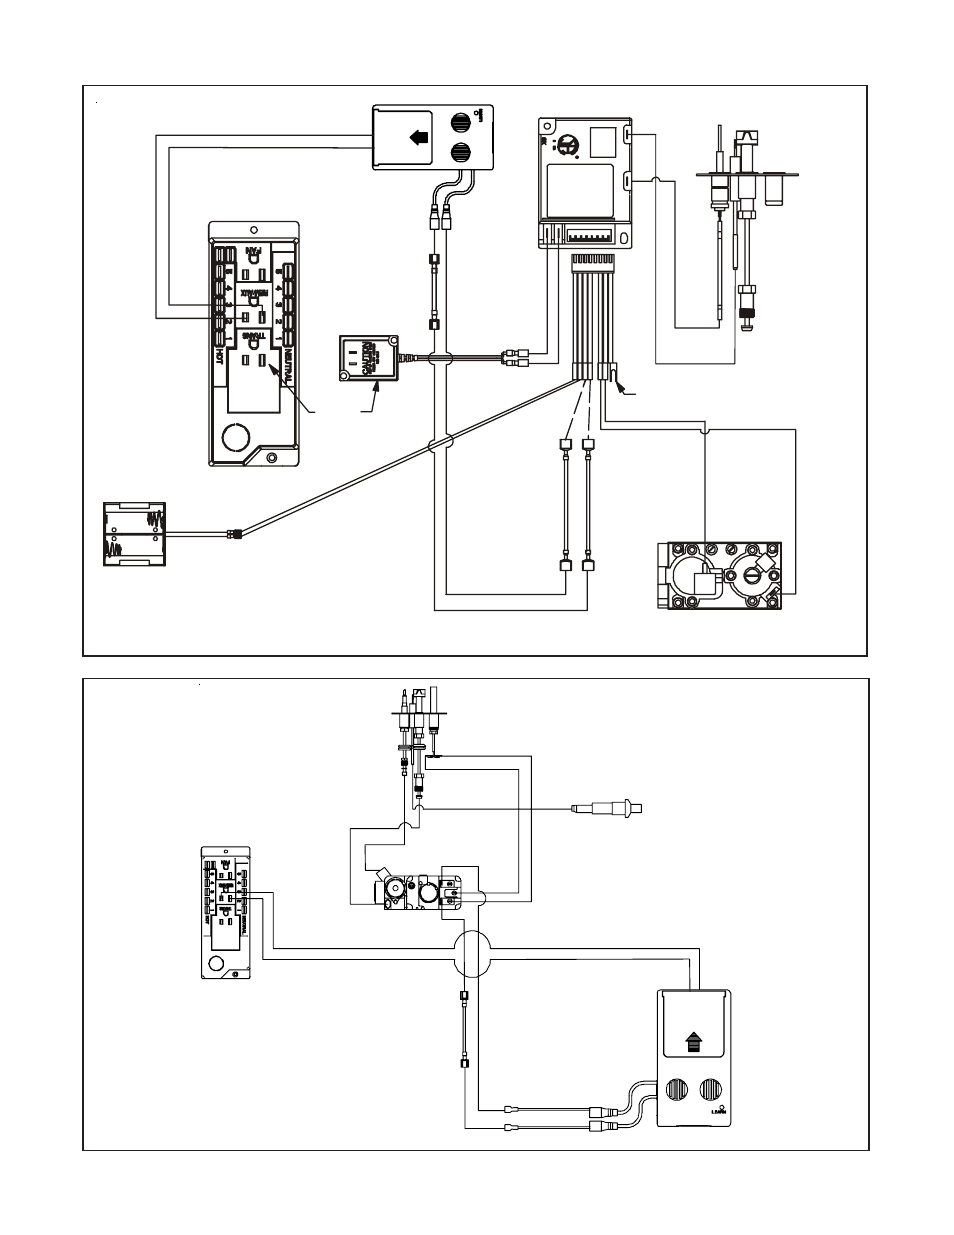 hight resolution of remote control wiring diagrams hearth and home technologies smart stat ii user manual page 10 10